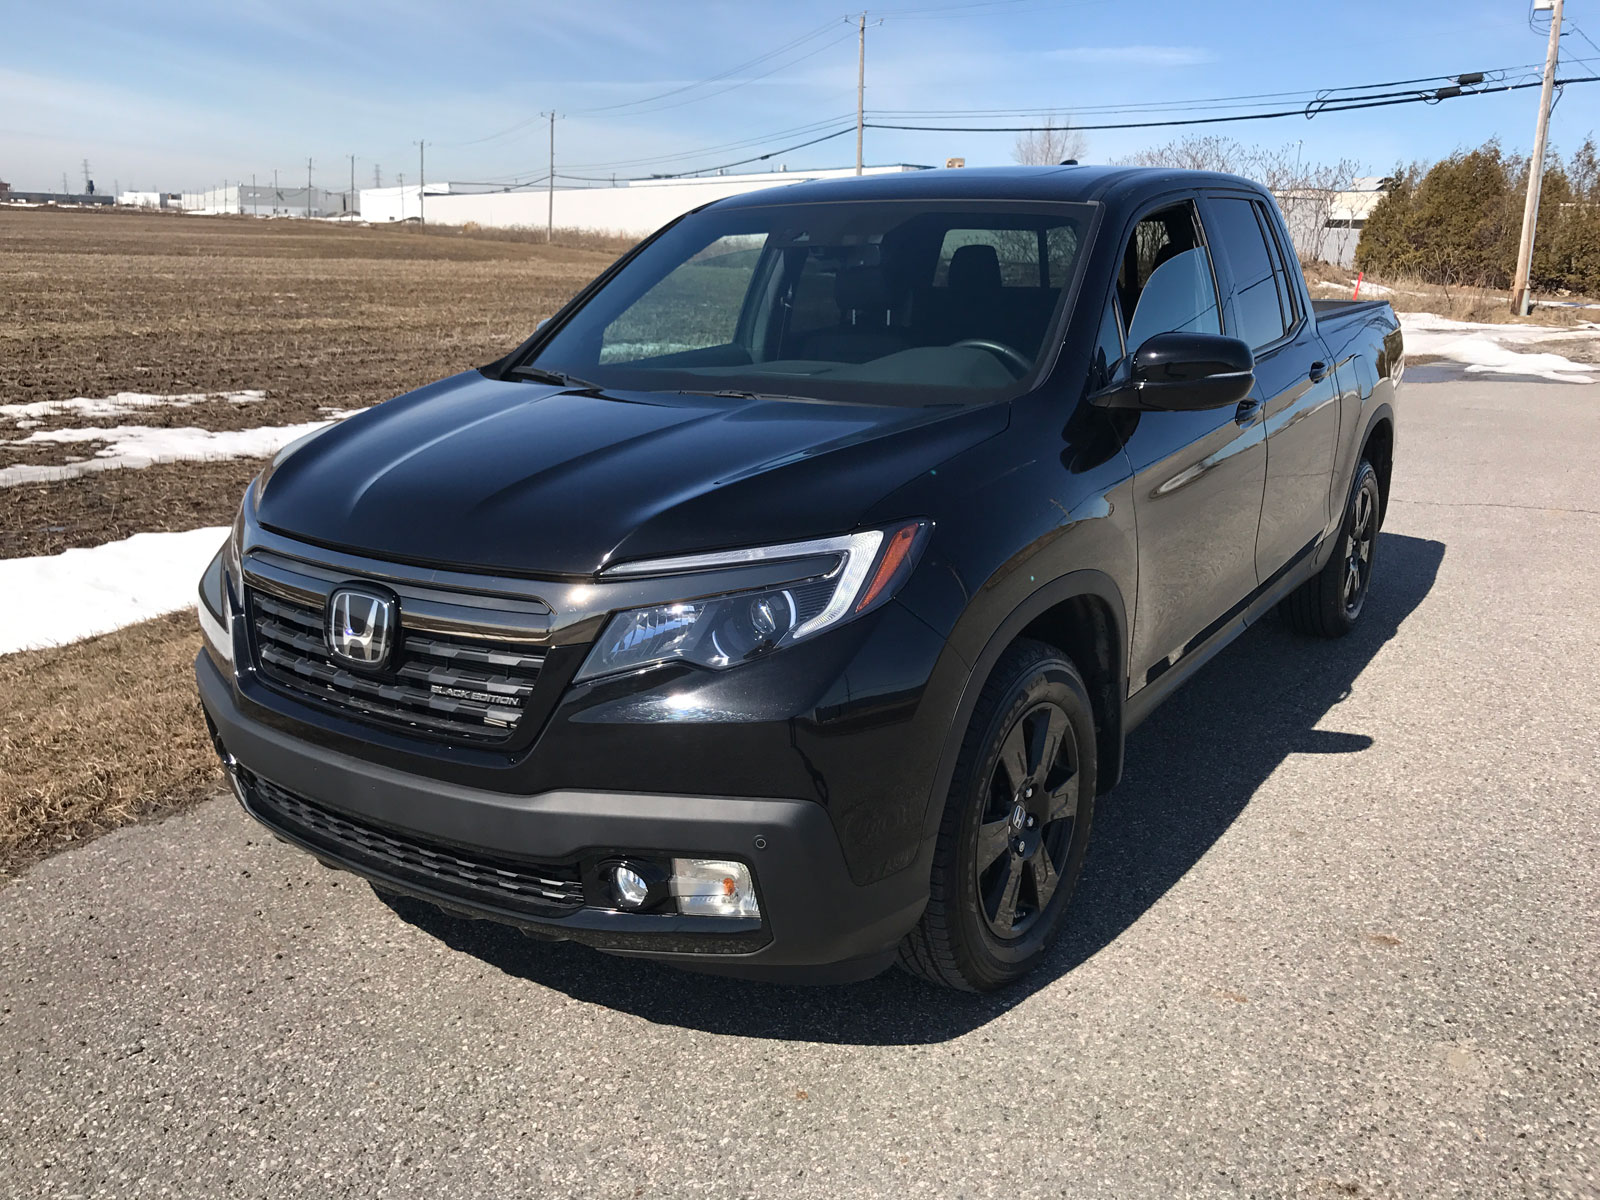 Road Test 2017 Honda Ridgeline Black Edition Trailer Hitch Wiring In A Nutshell It Feels Like Youre Driving Pilot For The Times When You Arent Towing Or Hauling Anything This Is Exactly What Doctor Ordered